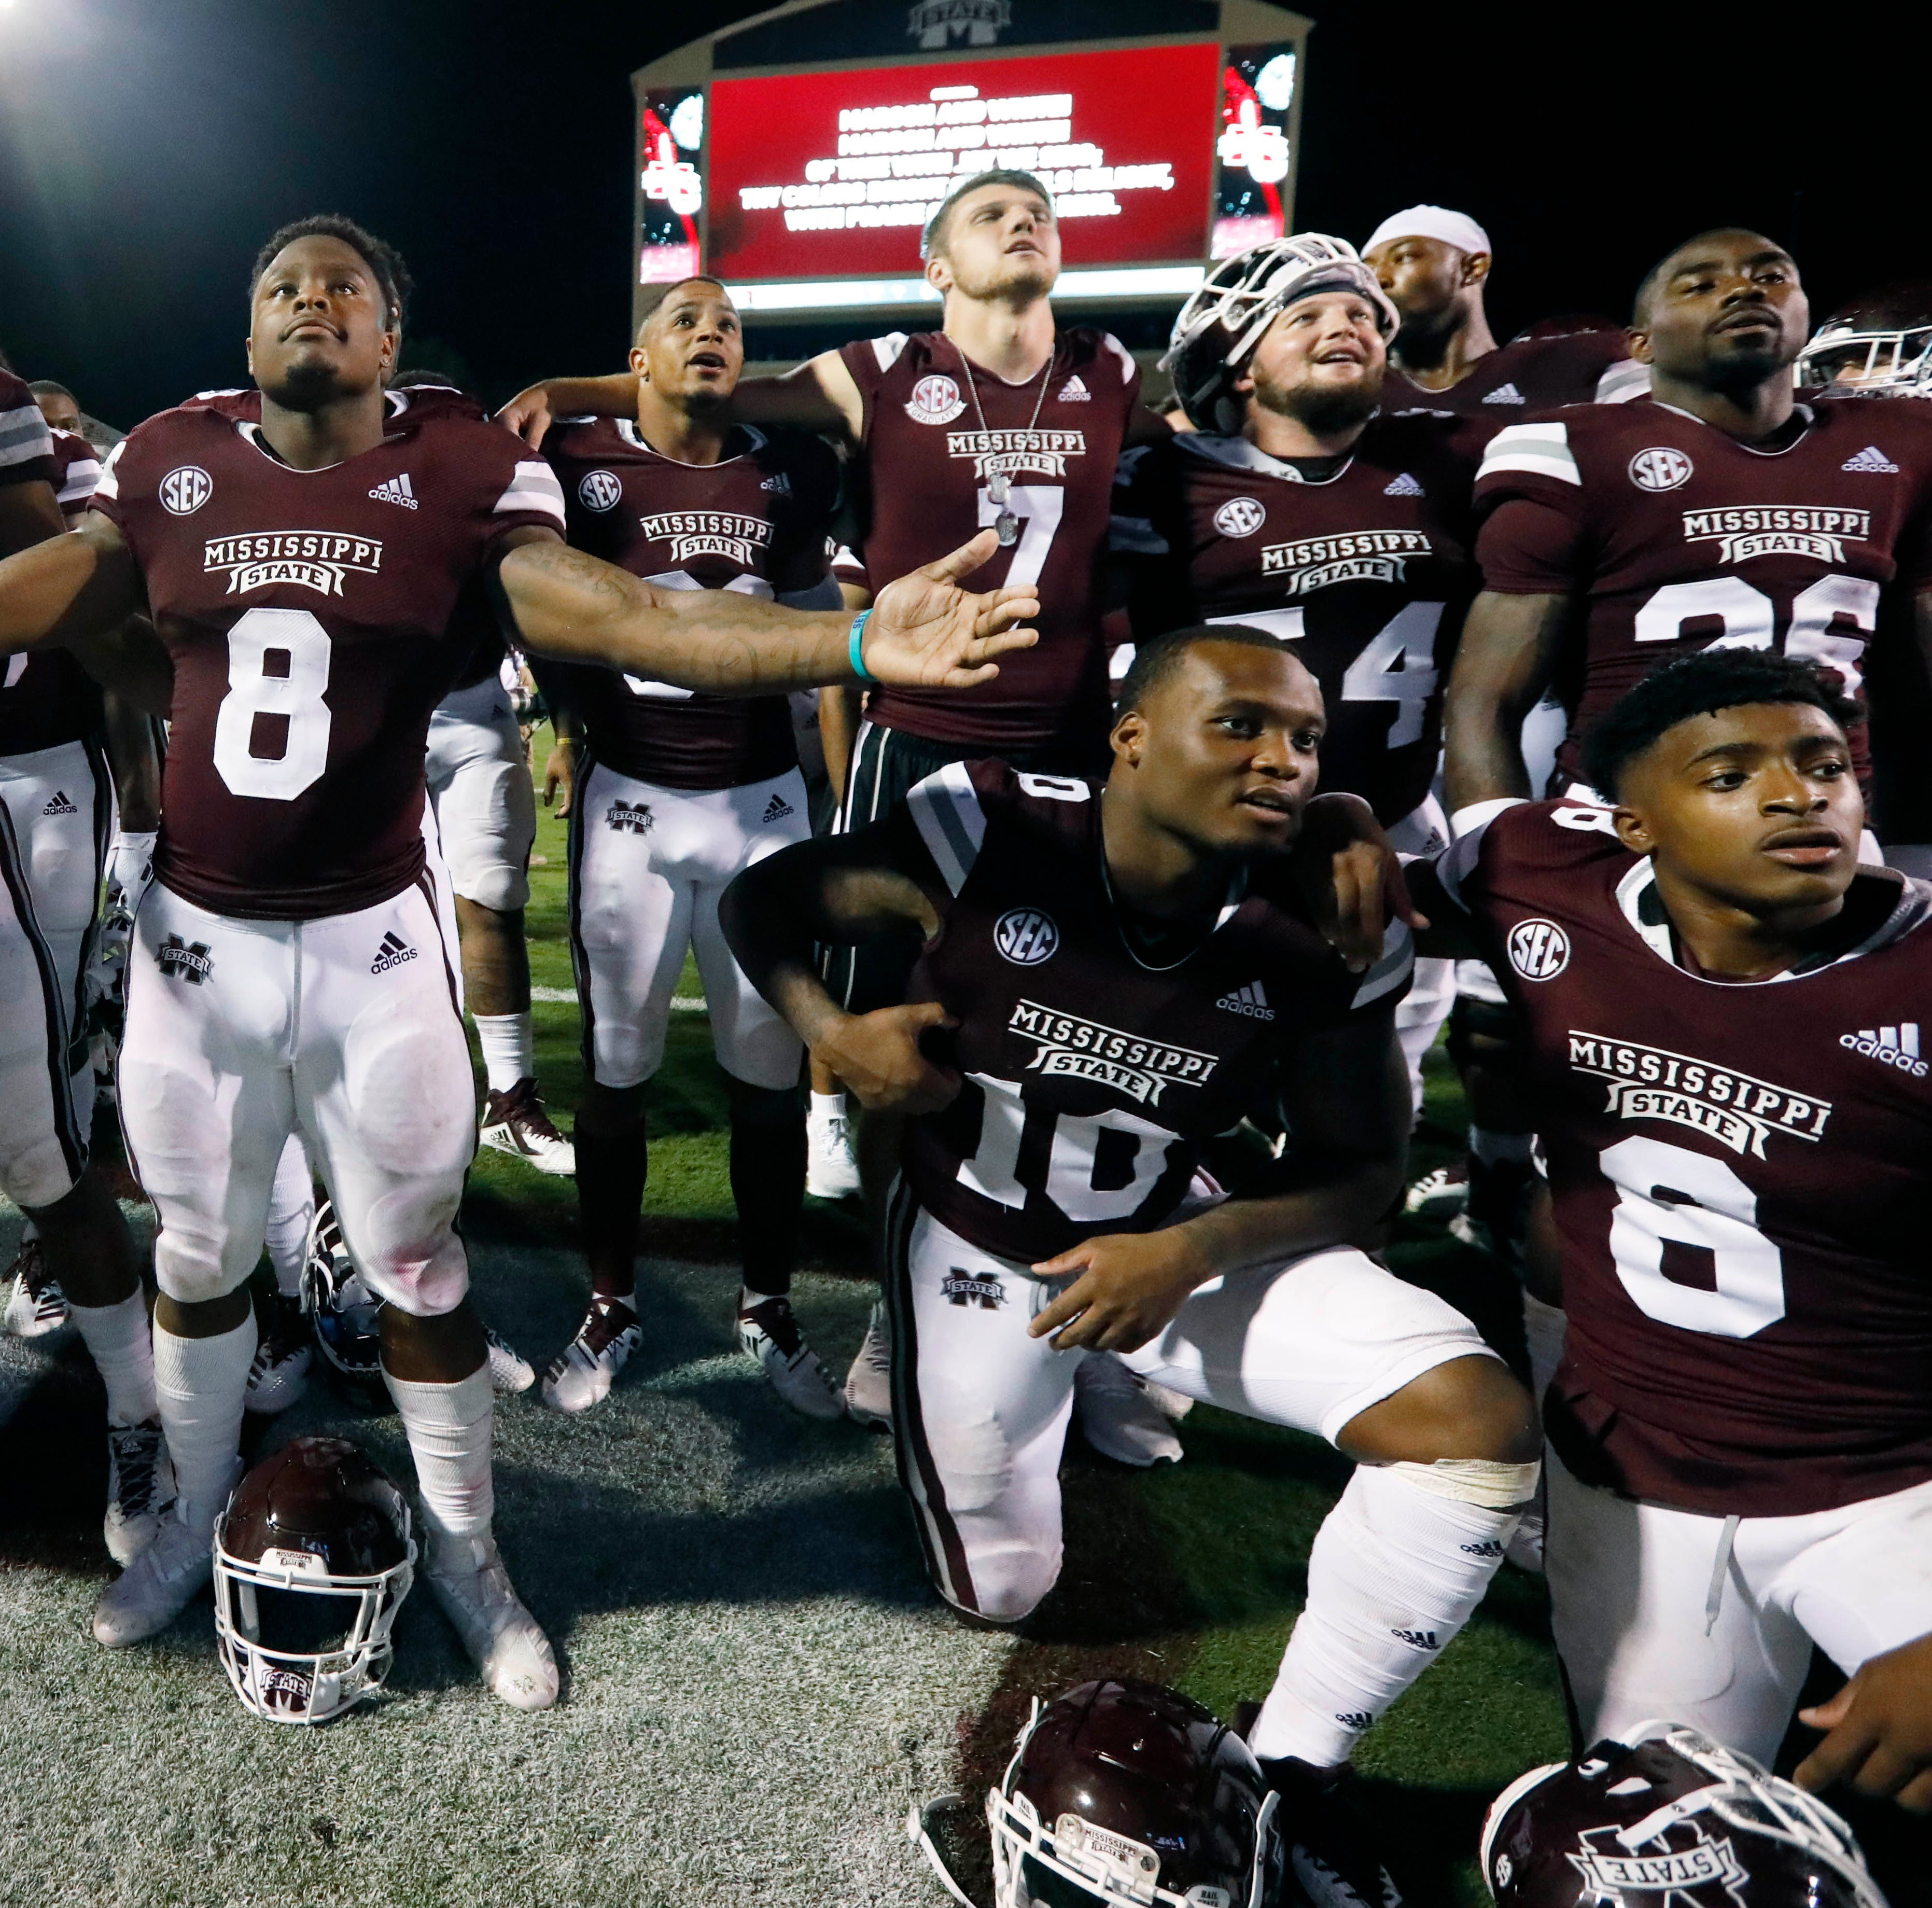 No. 14 Mississippi State and Kentucky take Twitter war of words to the field